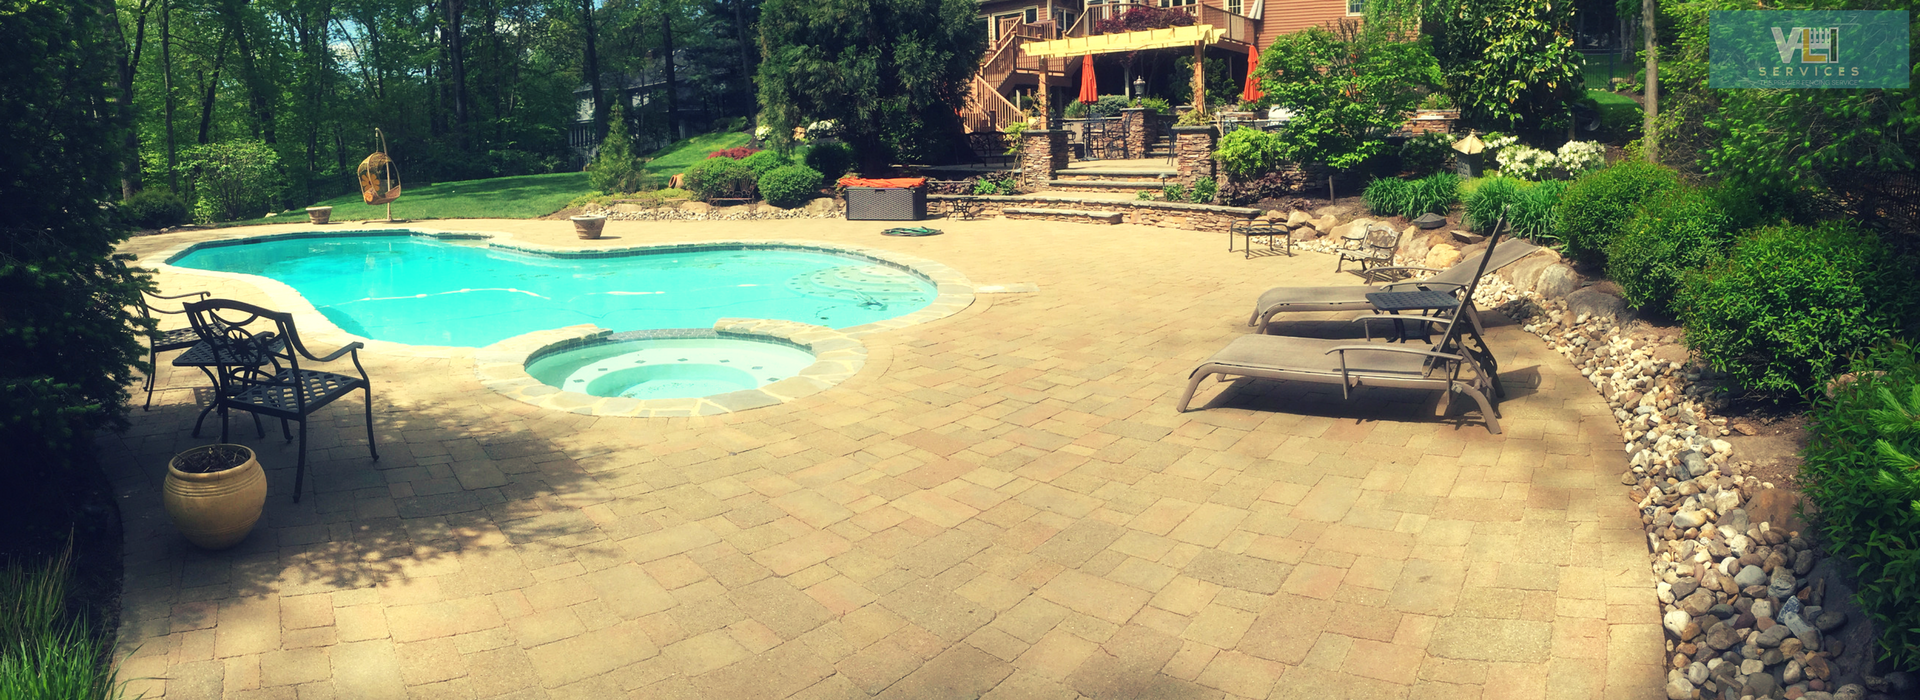 Hardscaping services by VLI Services